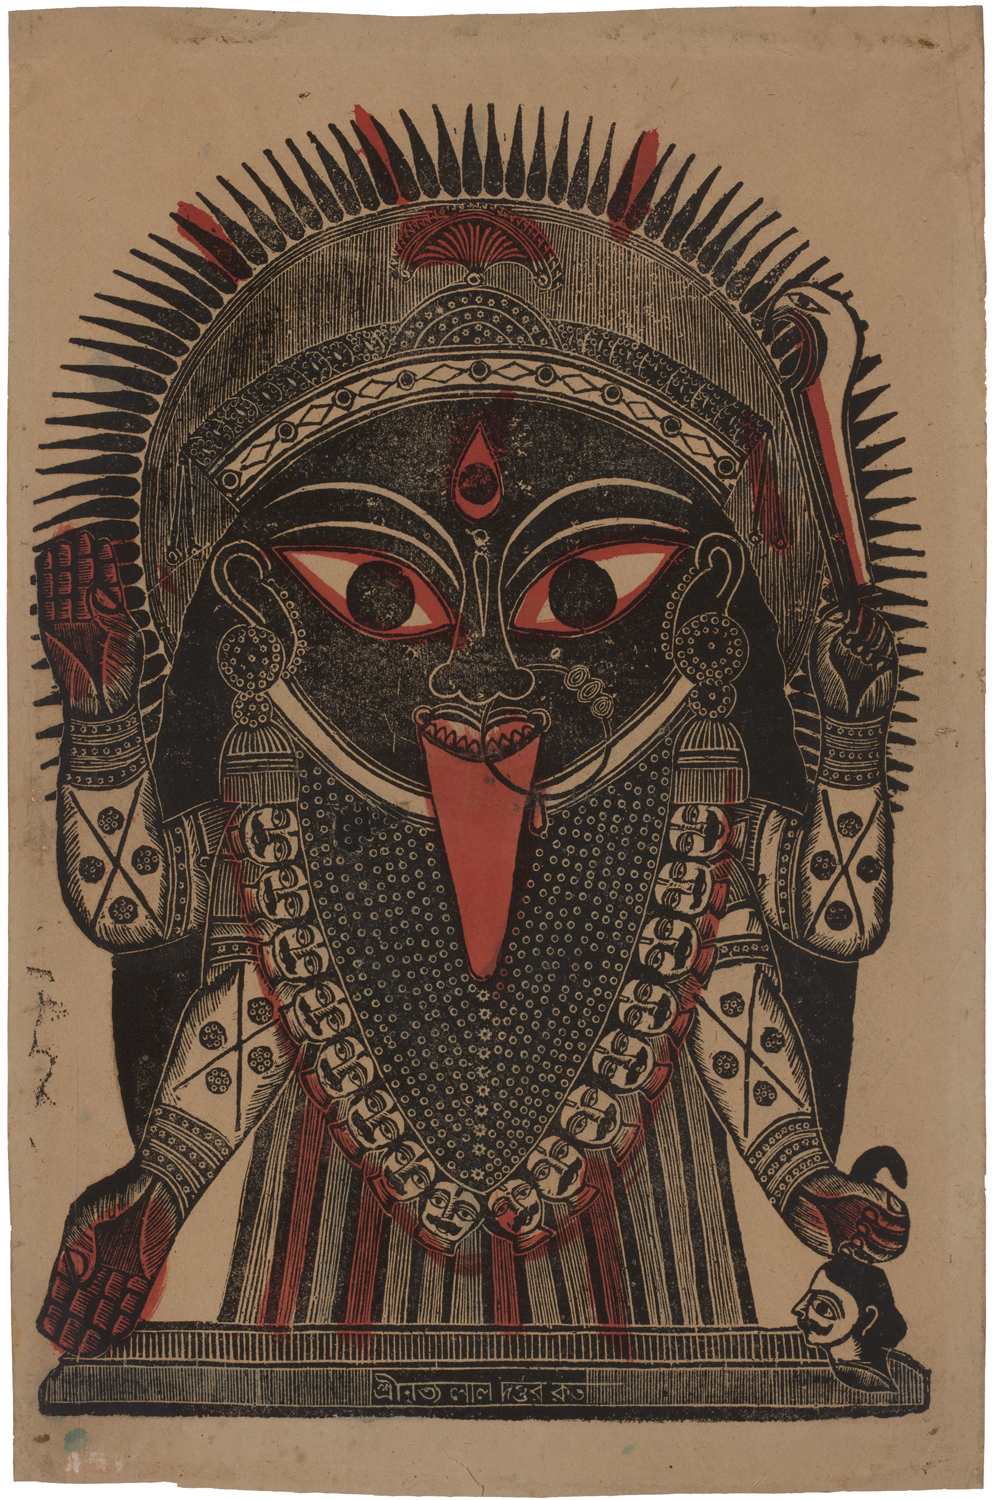 Nritya Lal Datta,  Kali  (ca. 1860–1870), woodblock print, 16 1/2 x 10 7/8 inches, Calcutta. Collection of Mark Baron and Elise Boisanté.